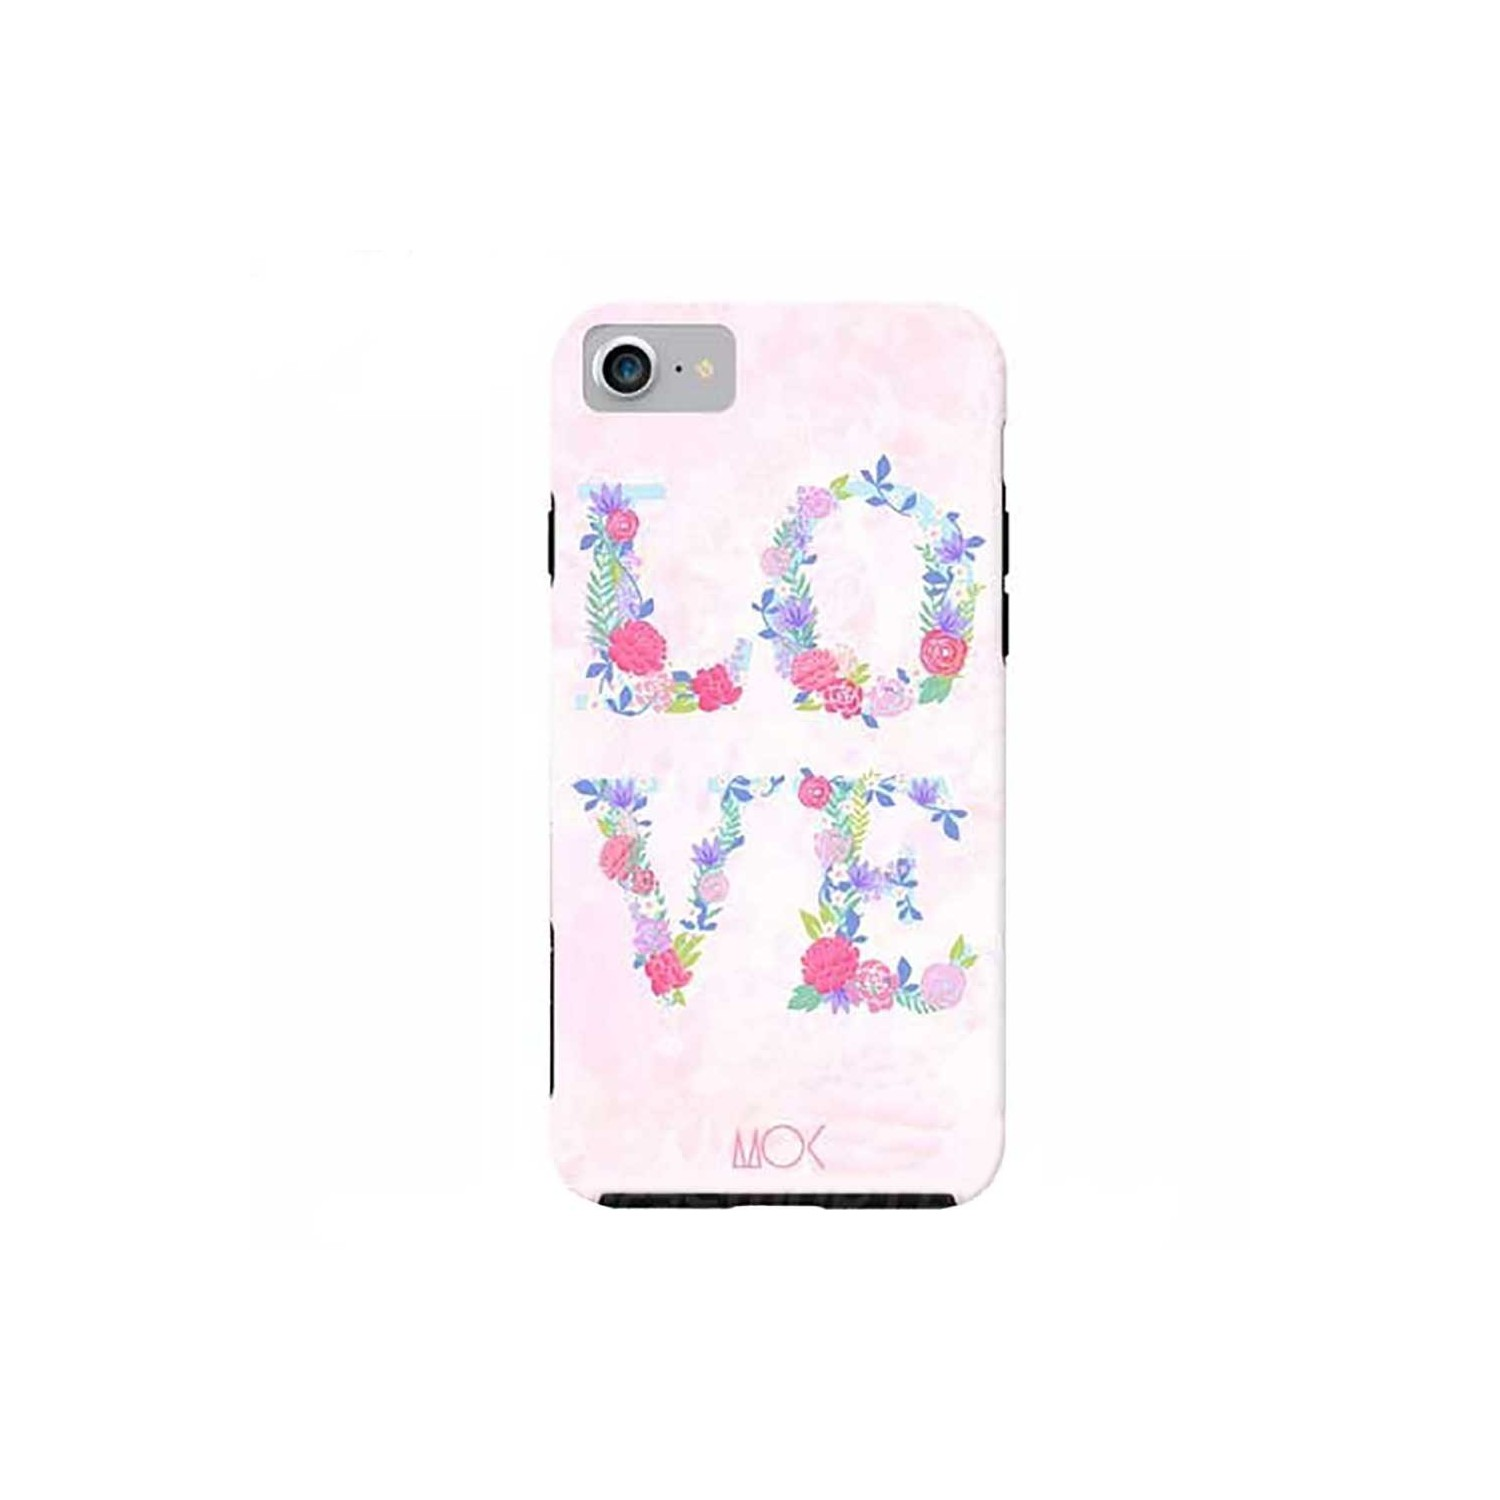 Case -  ArtsCase StrongFit for iPhone 7 Love by MOK